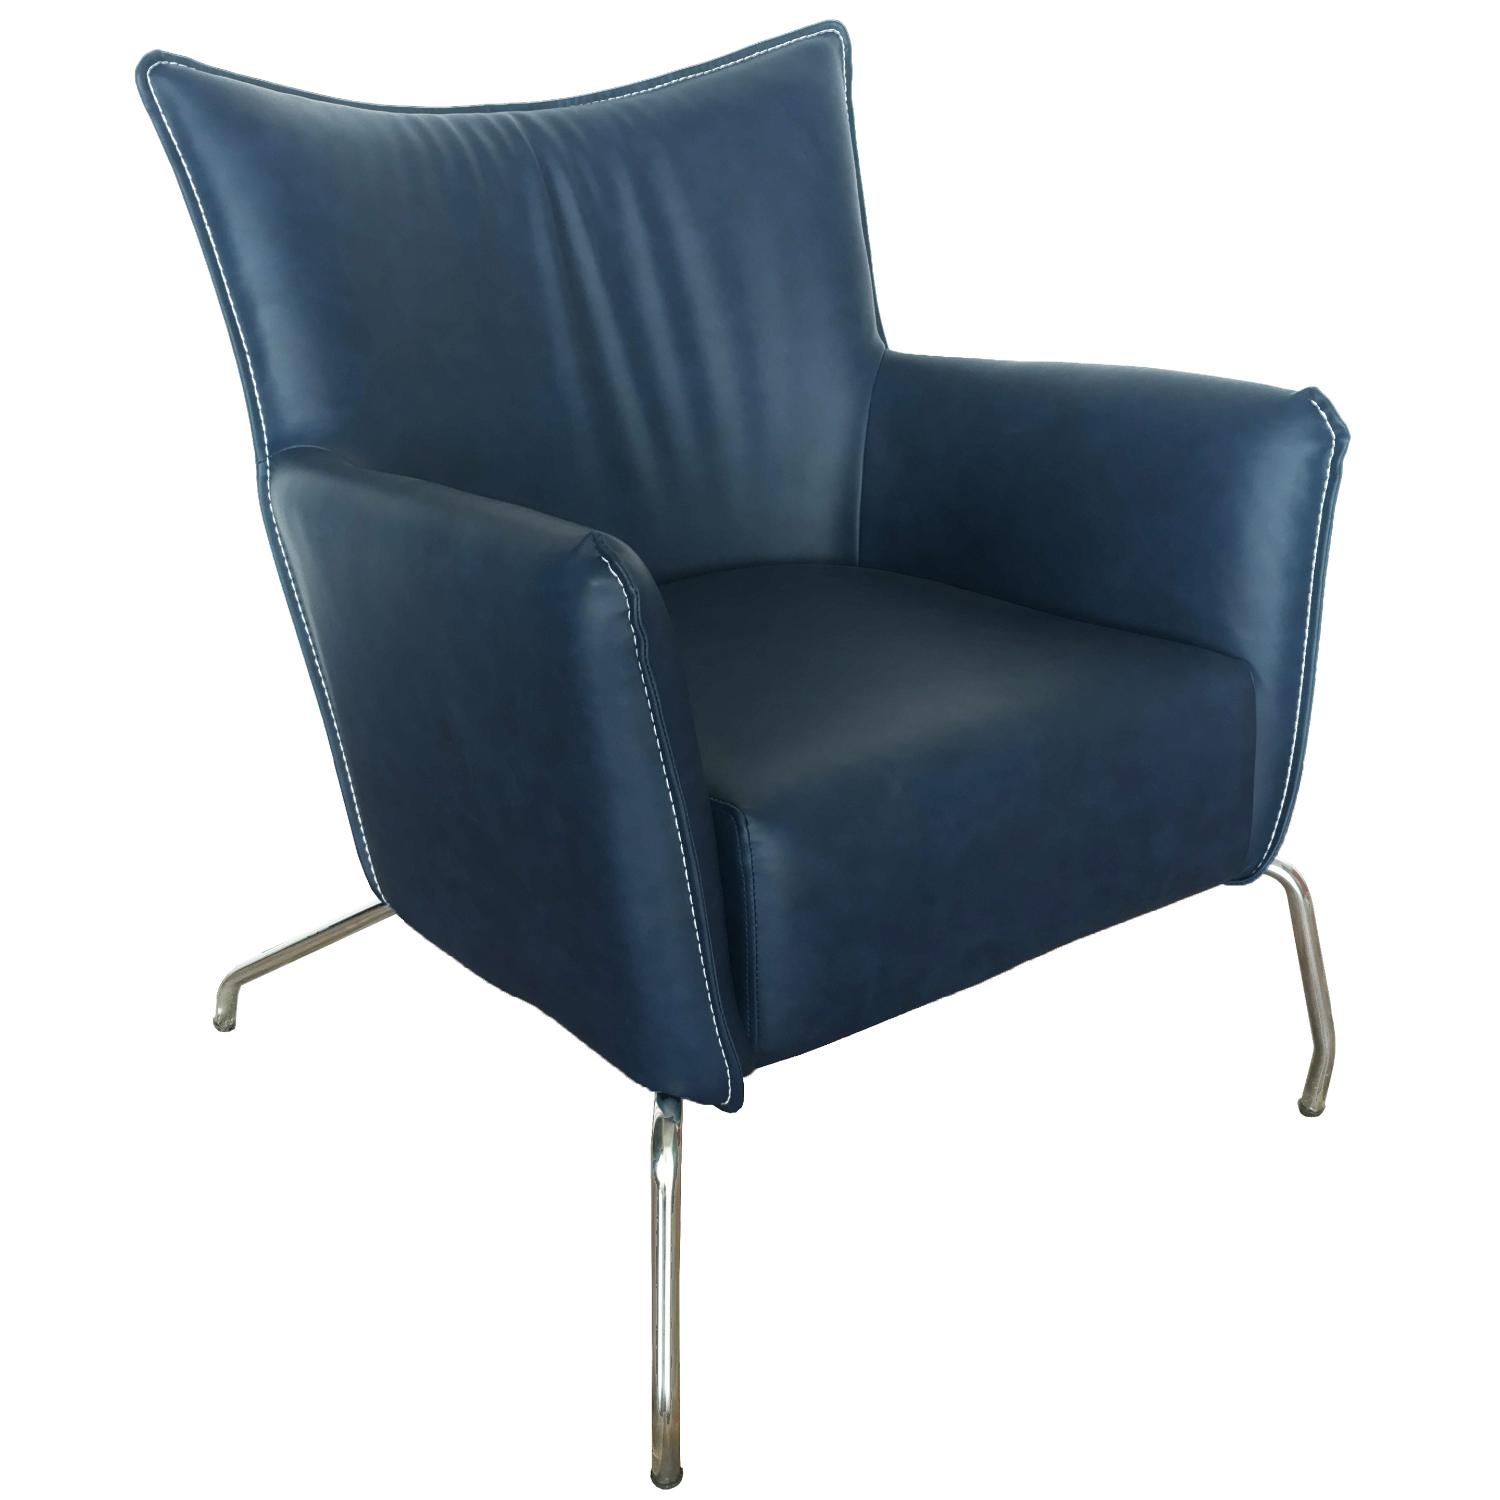 Groovy 2008 Accent Chair In Blue Leatherette Polished Stainless By Chintaly Imports Inzonedesignstudio Interior Chair Design Inzonedesignstudiocom